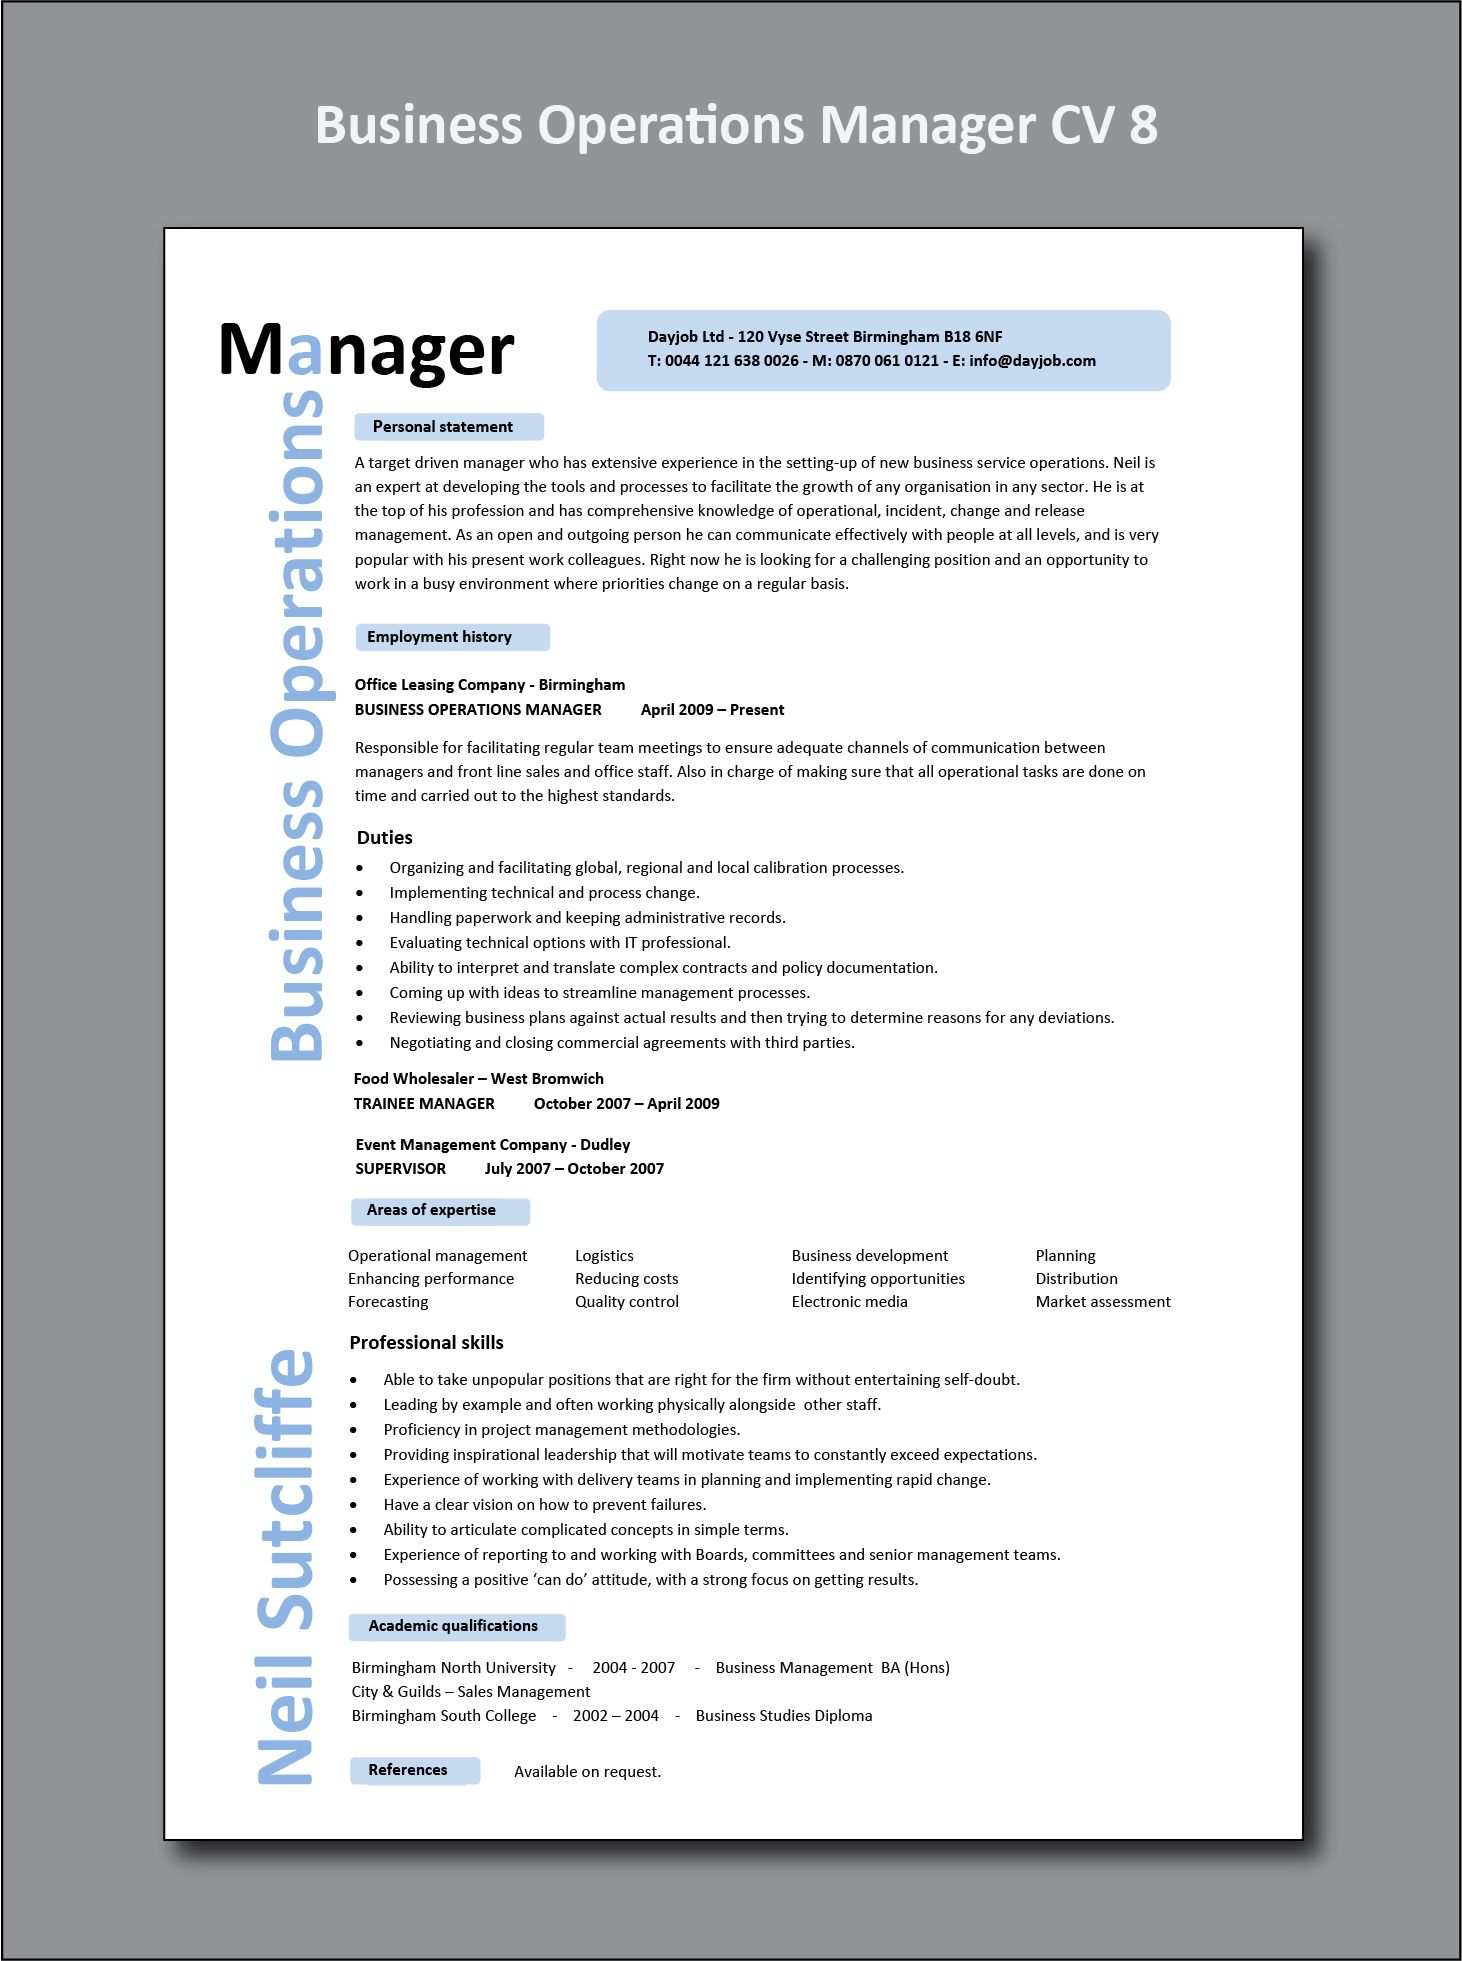 Business Operations Manager CV 8 example